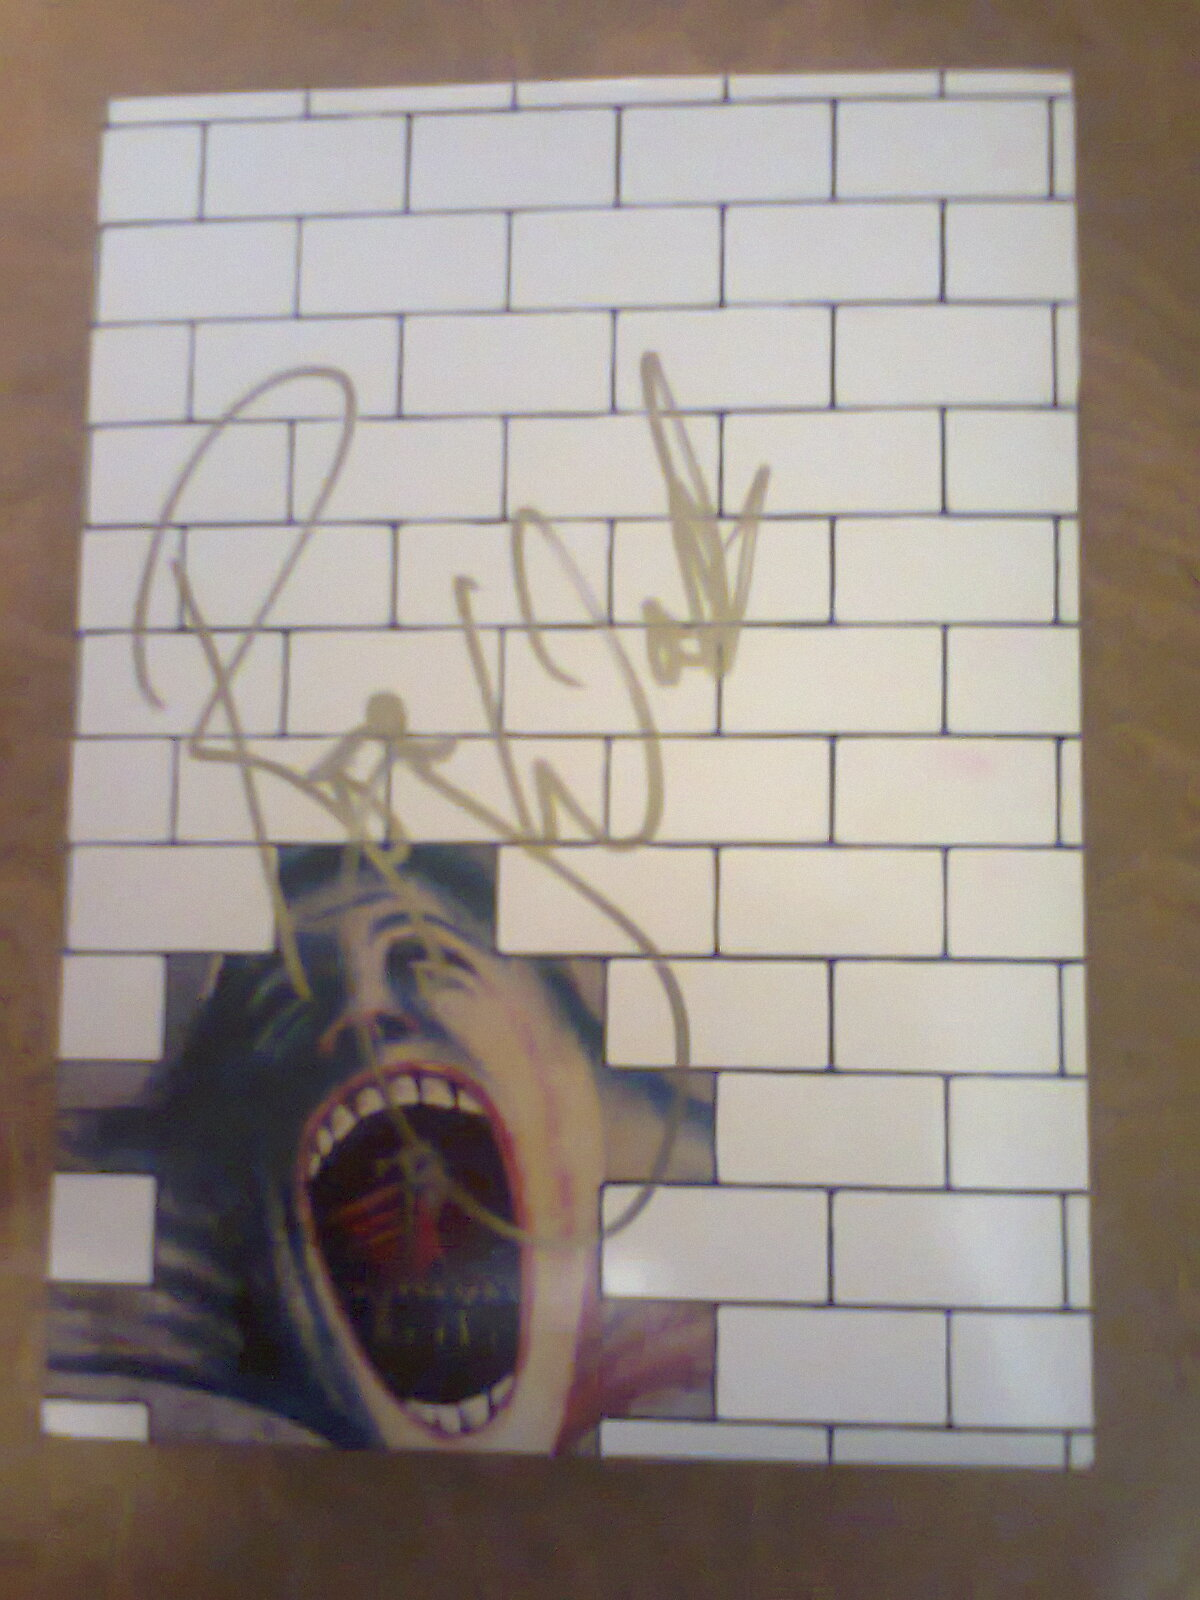 The Wall autografiado por Roger Waters :D